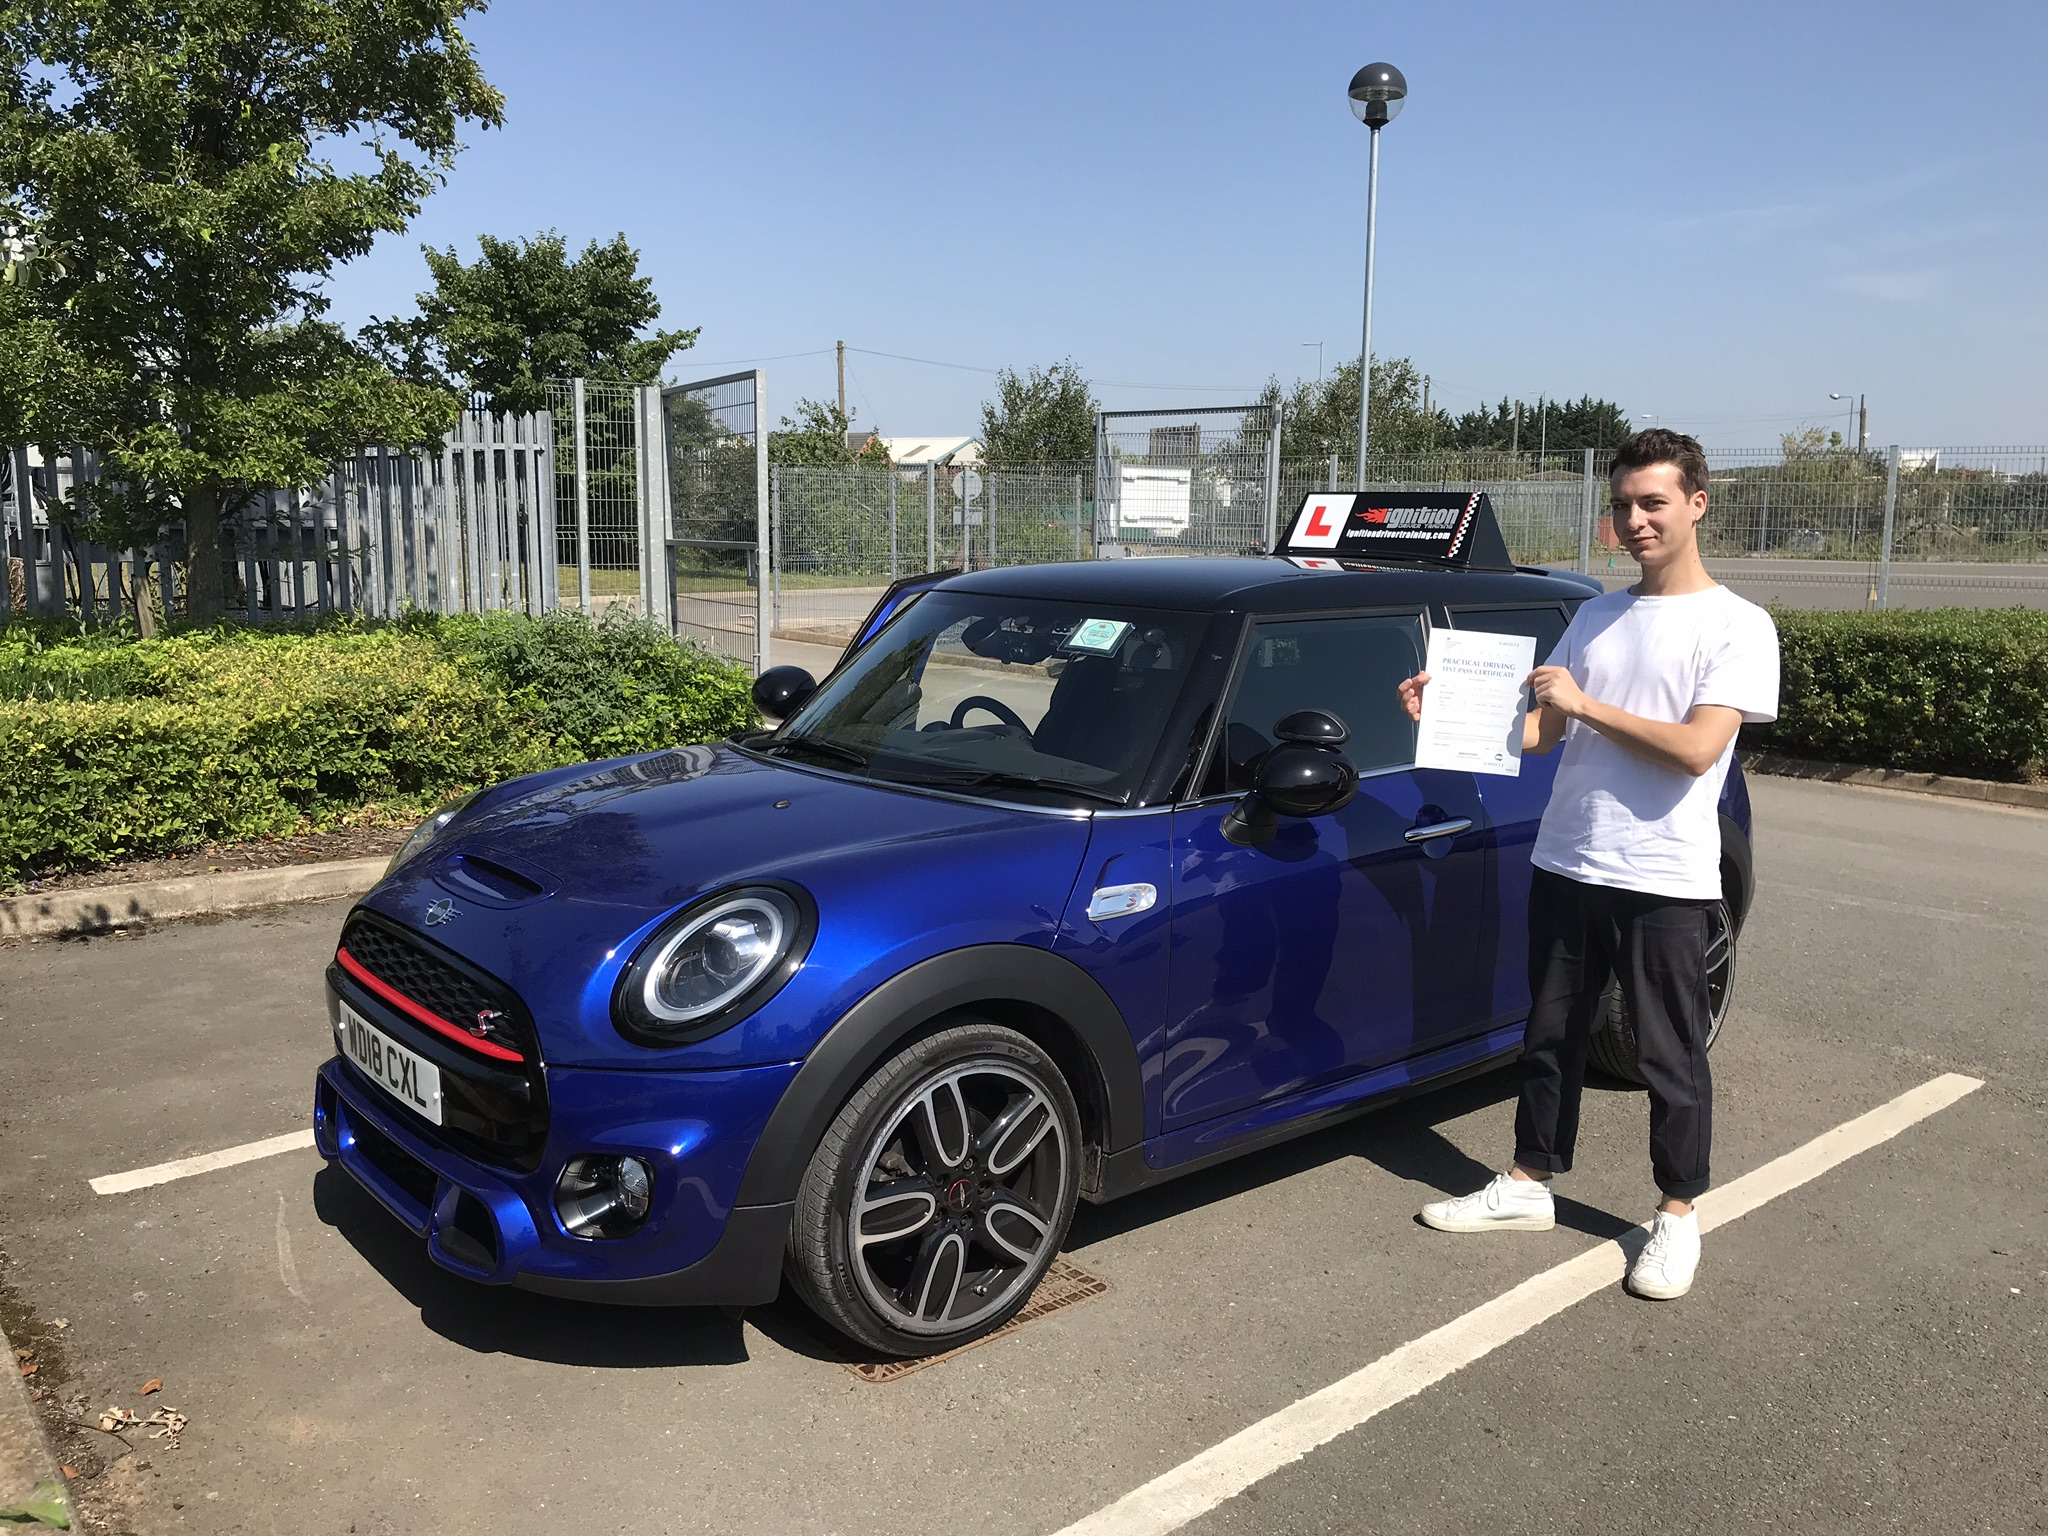 James has passed first time!